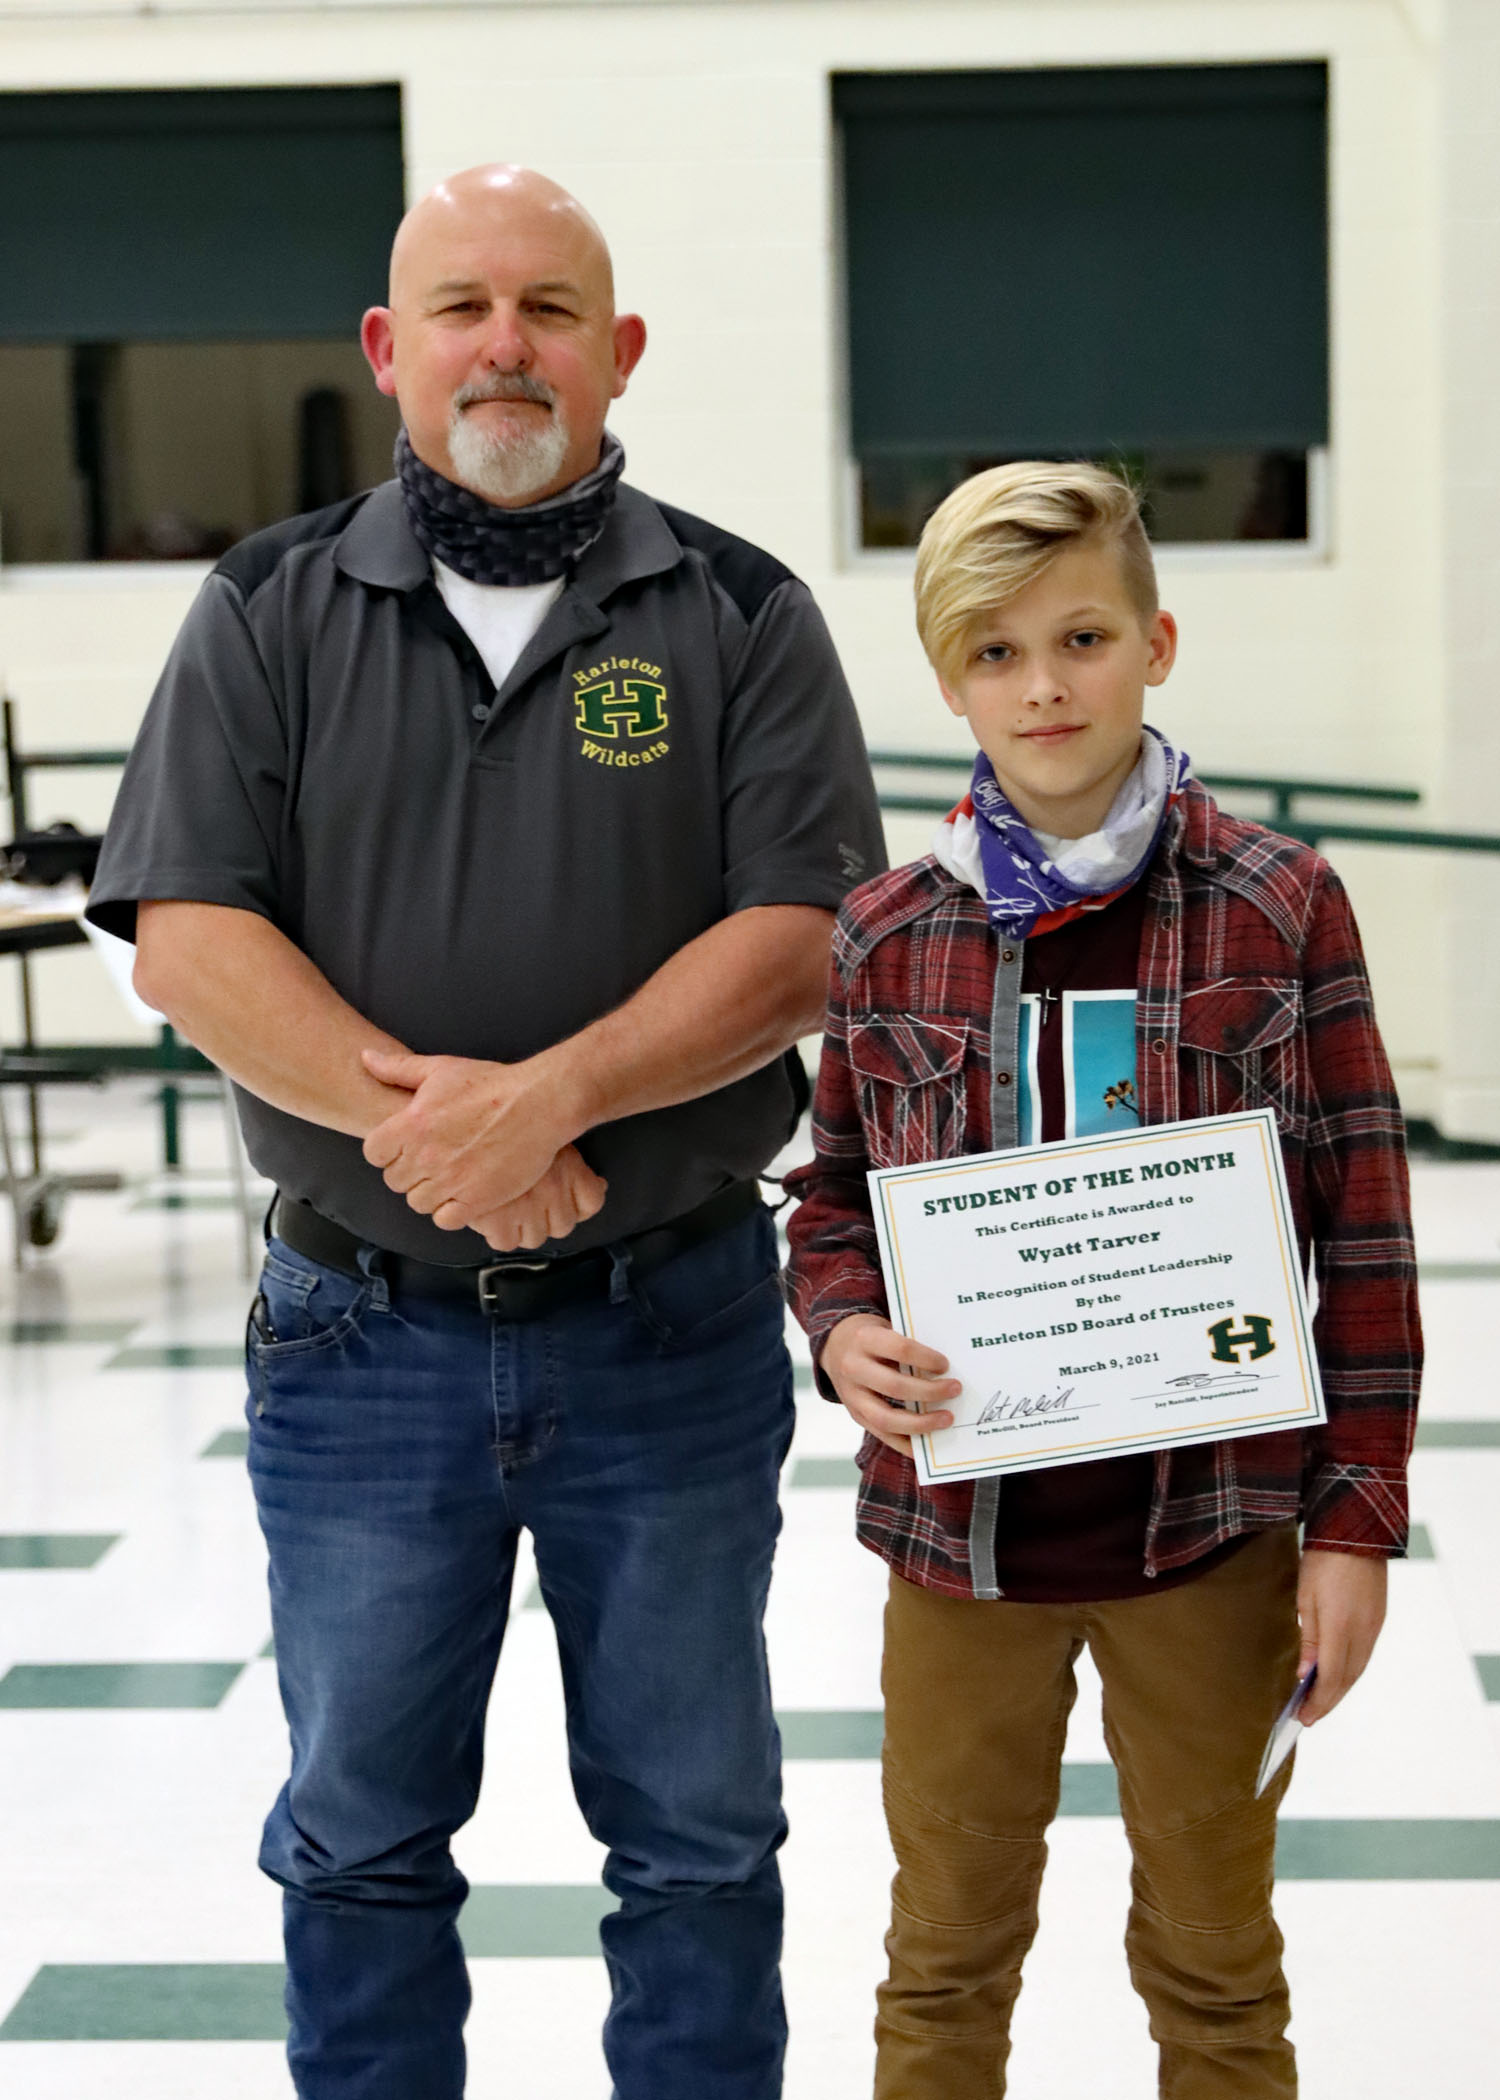 March Student of the Month Wyatt Tarver!